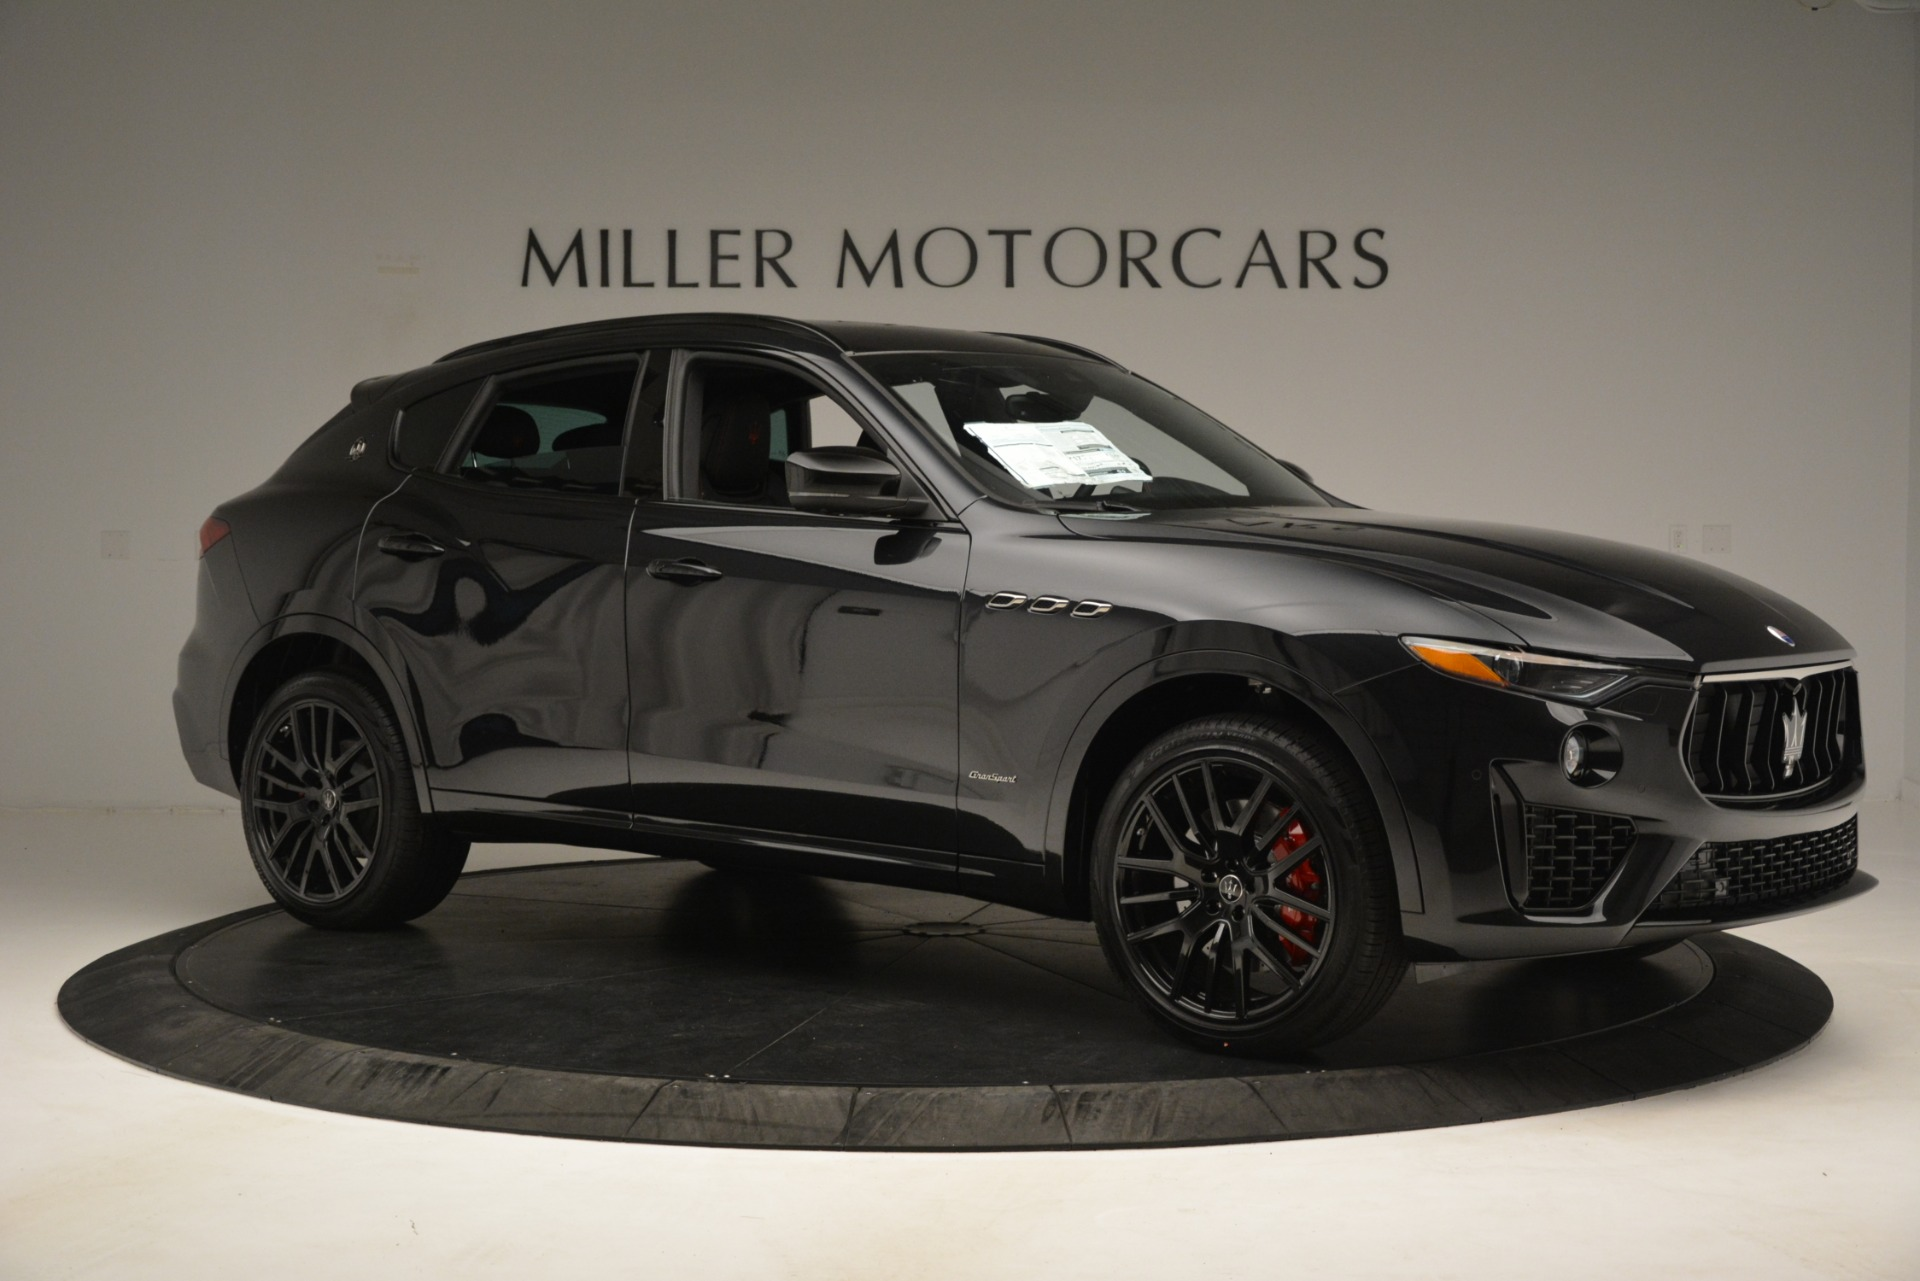 New 2019 Maserati Levante SQ4 GranSport Nerissimo For Sale In Westport, CT 3199_p10